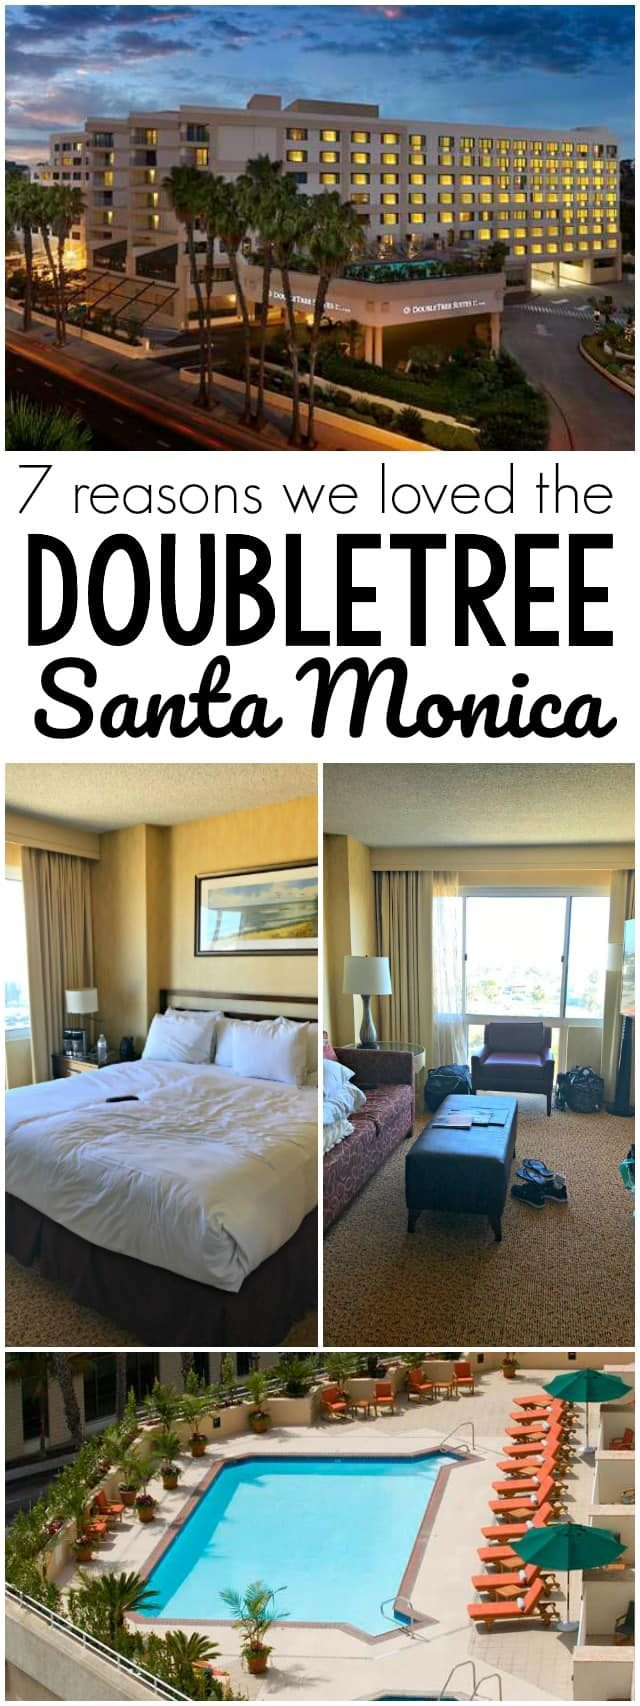 doubletree hotel santa monica hotel review crazy for crust. Black Bedroom Furniture Sets. Home Design Ideas